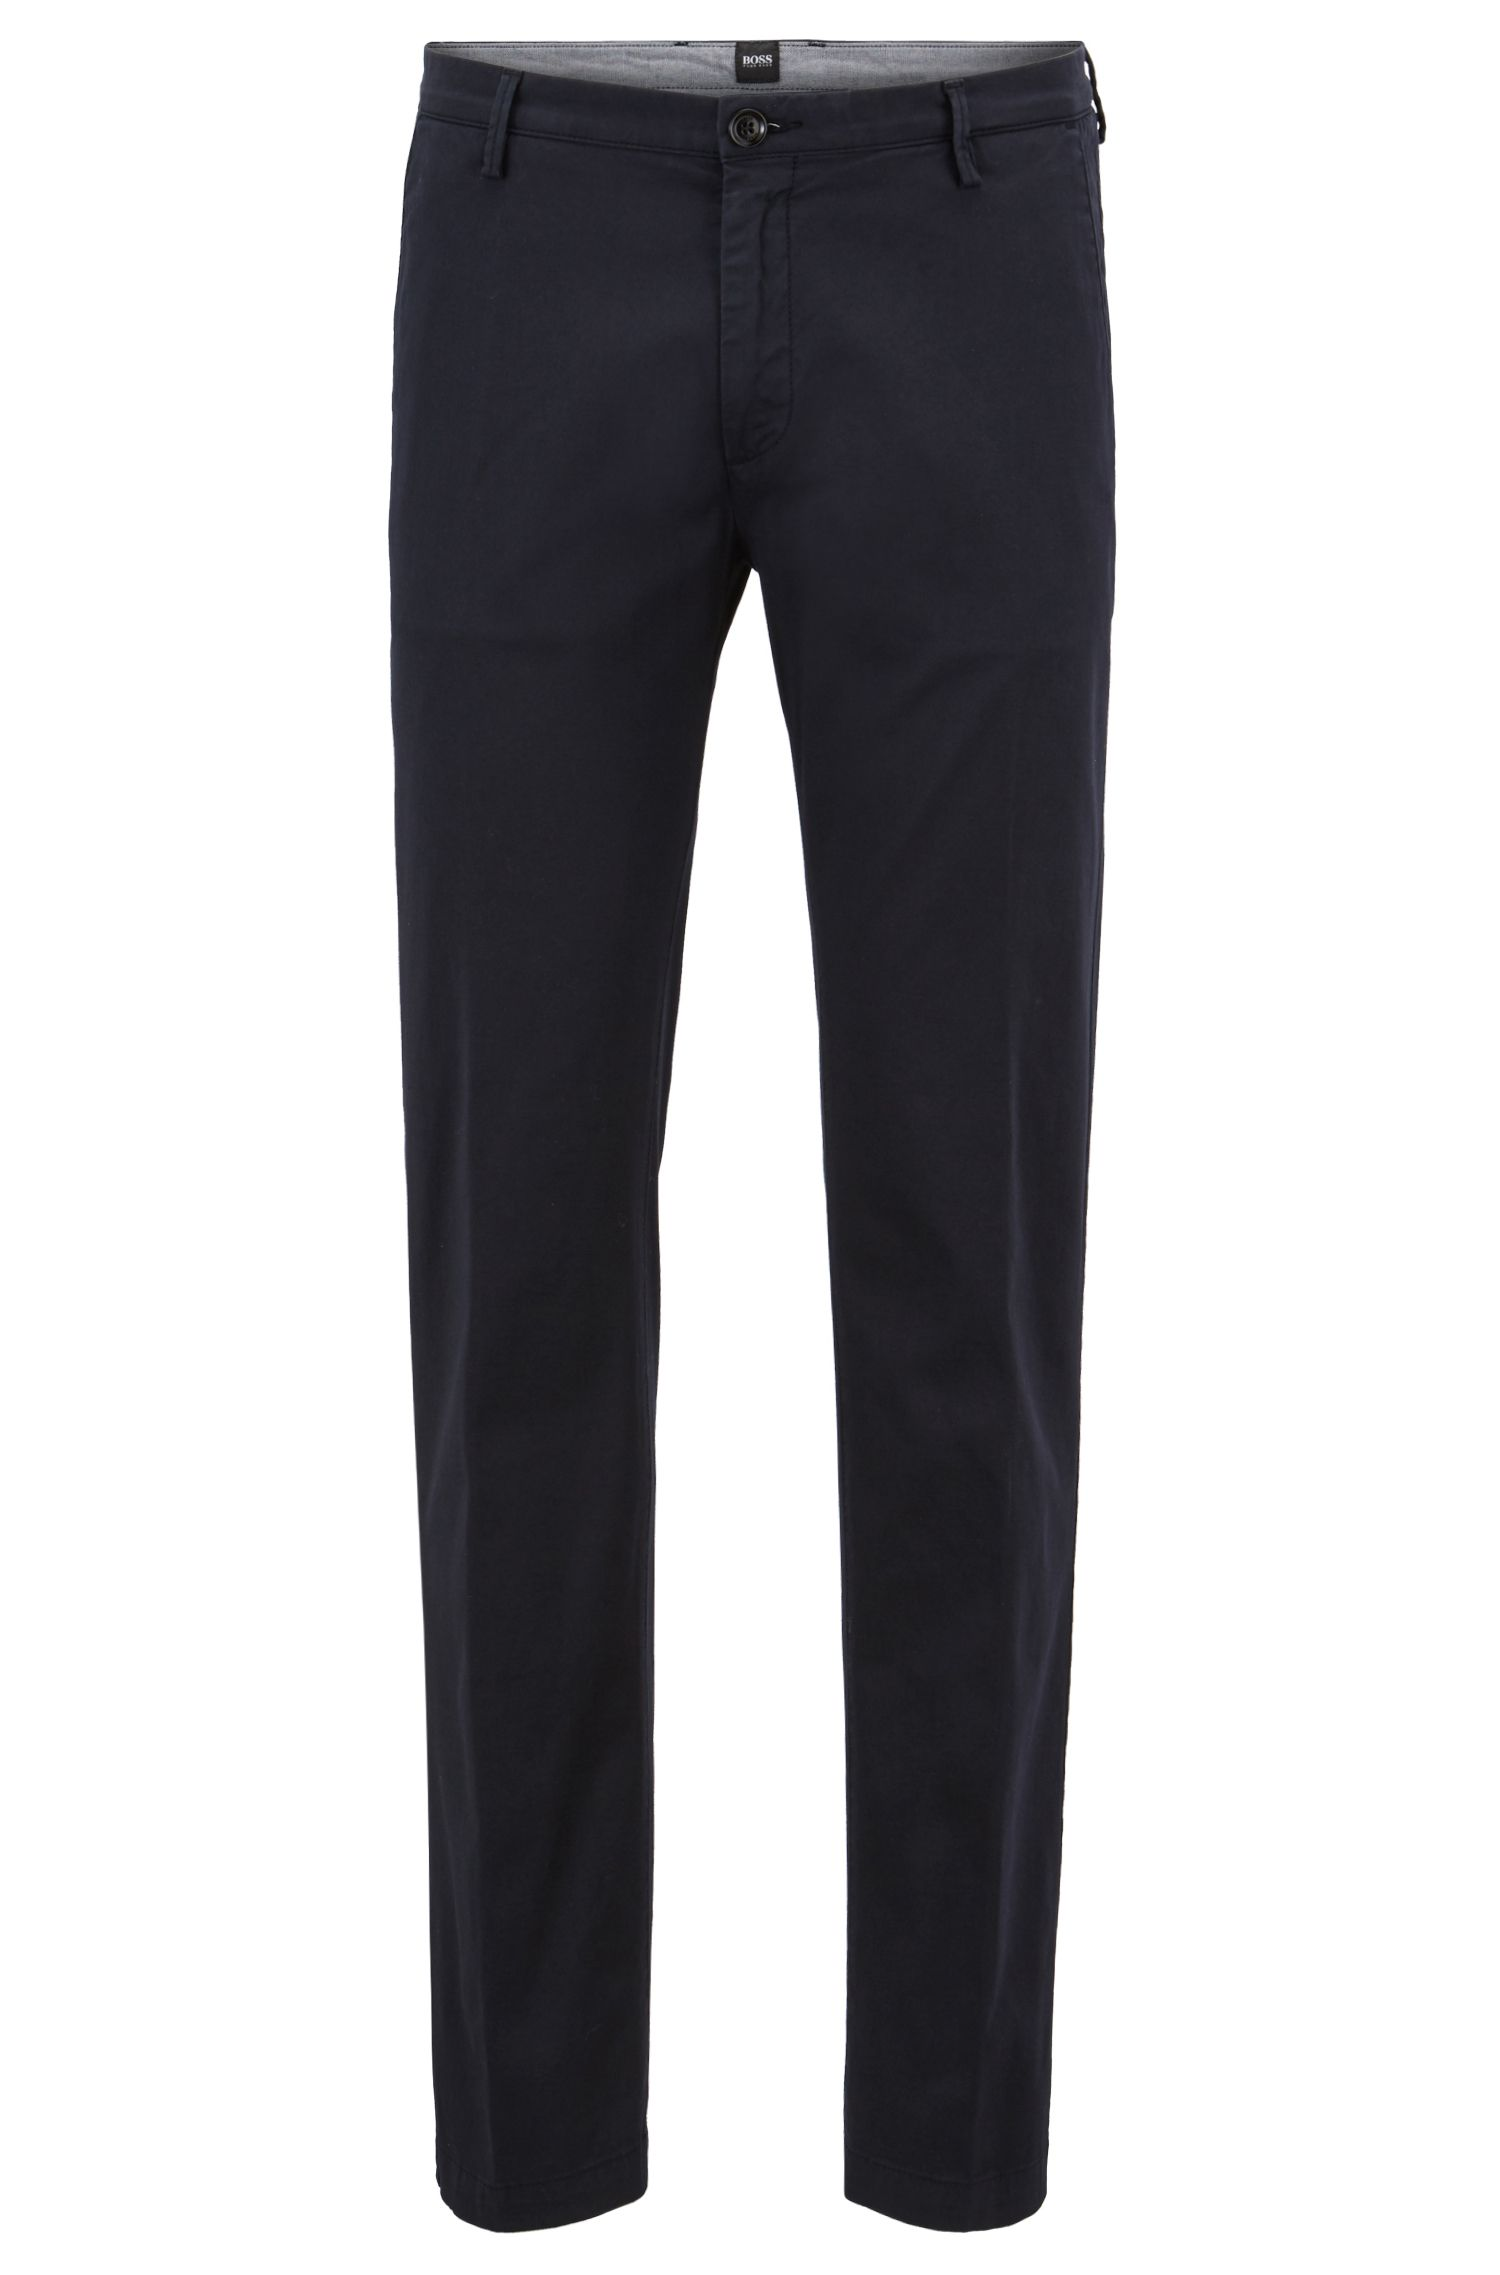 'Rice3-D' | Slim Fit, Cotton Stretch Trousers